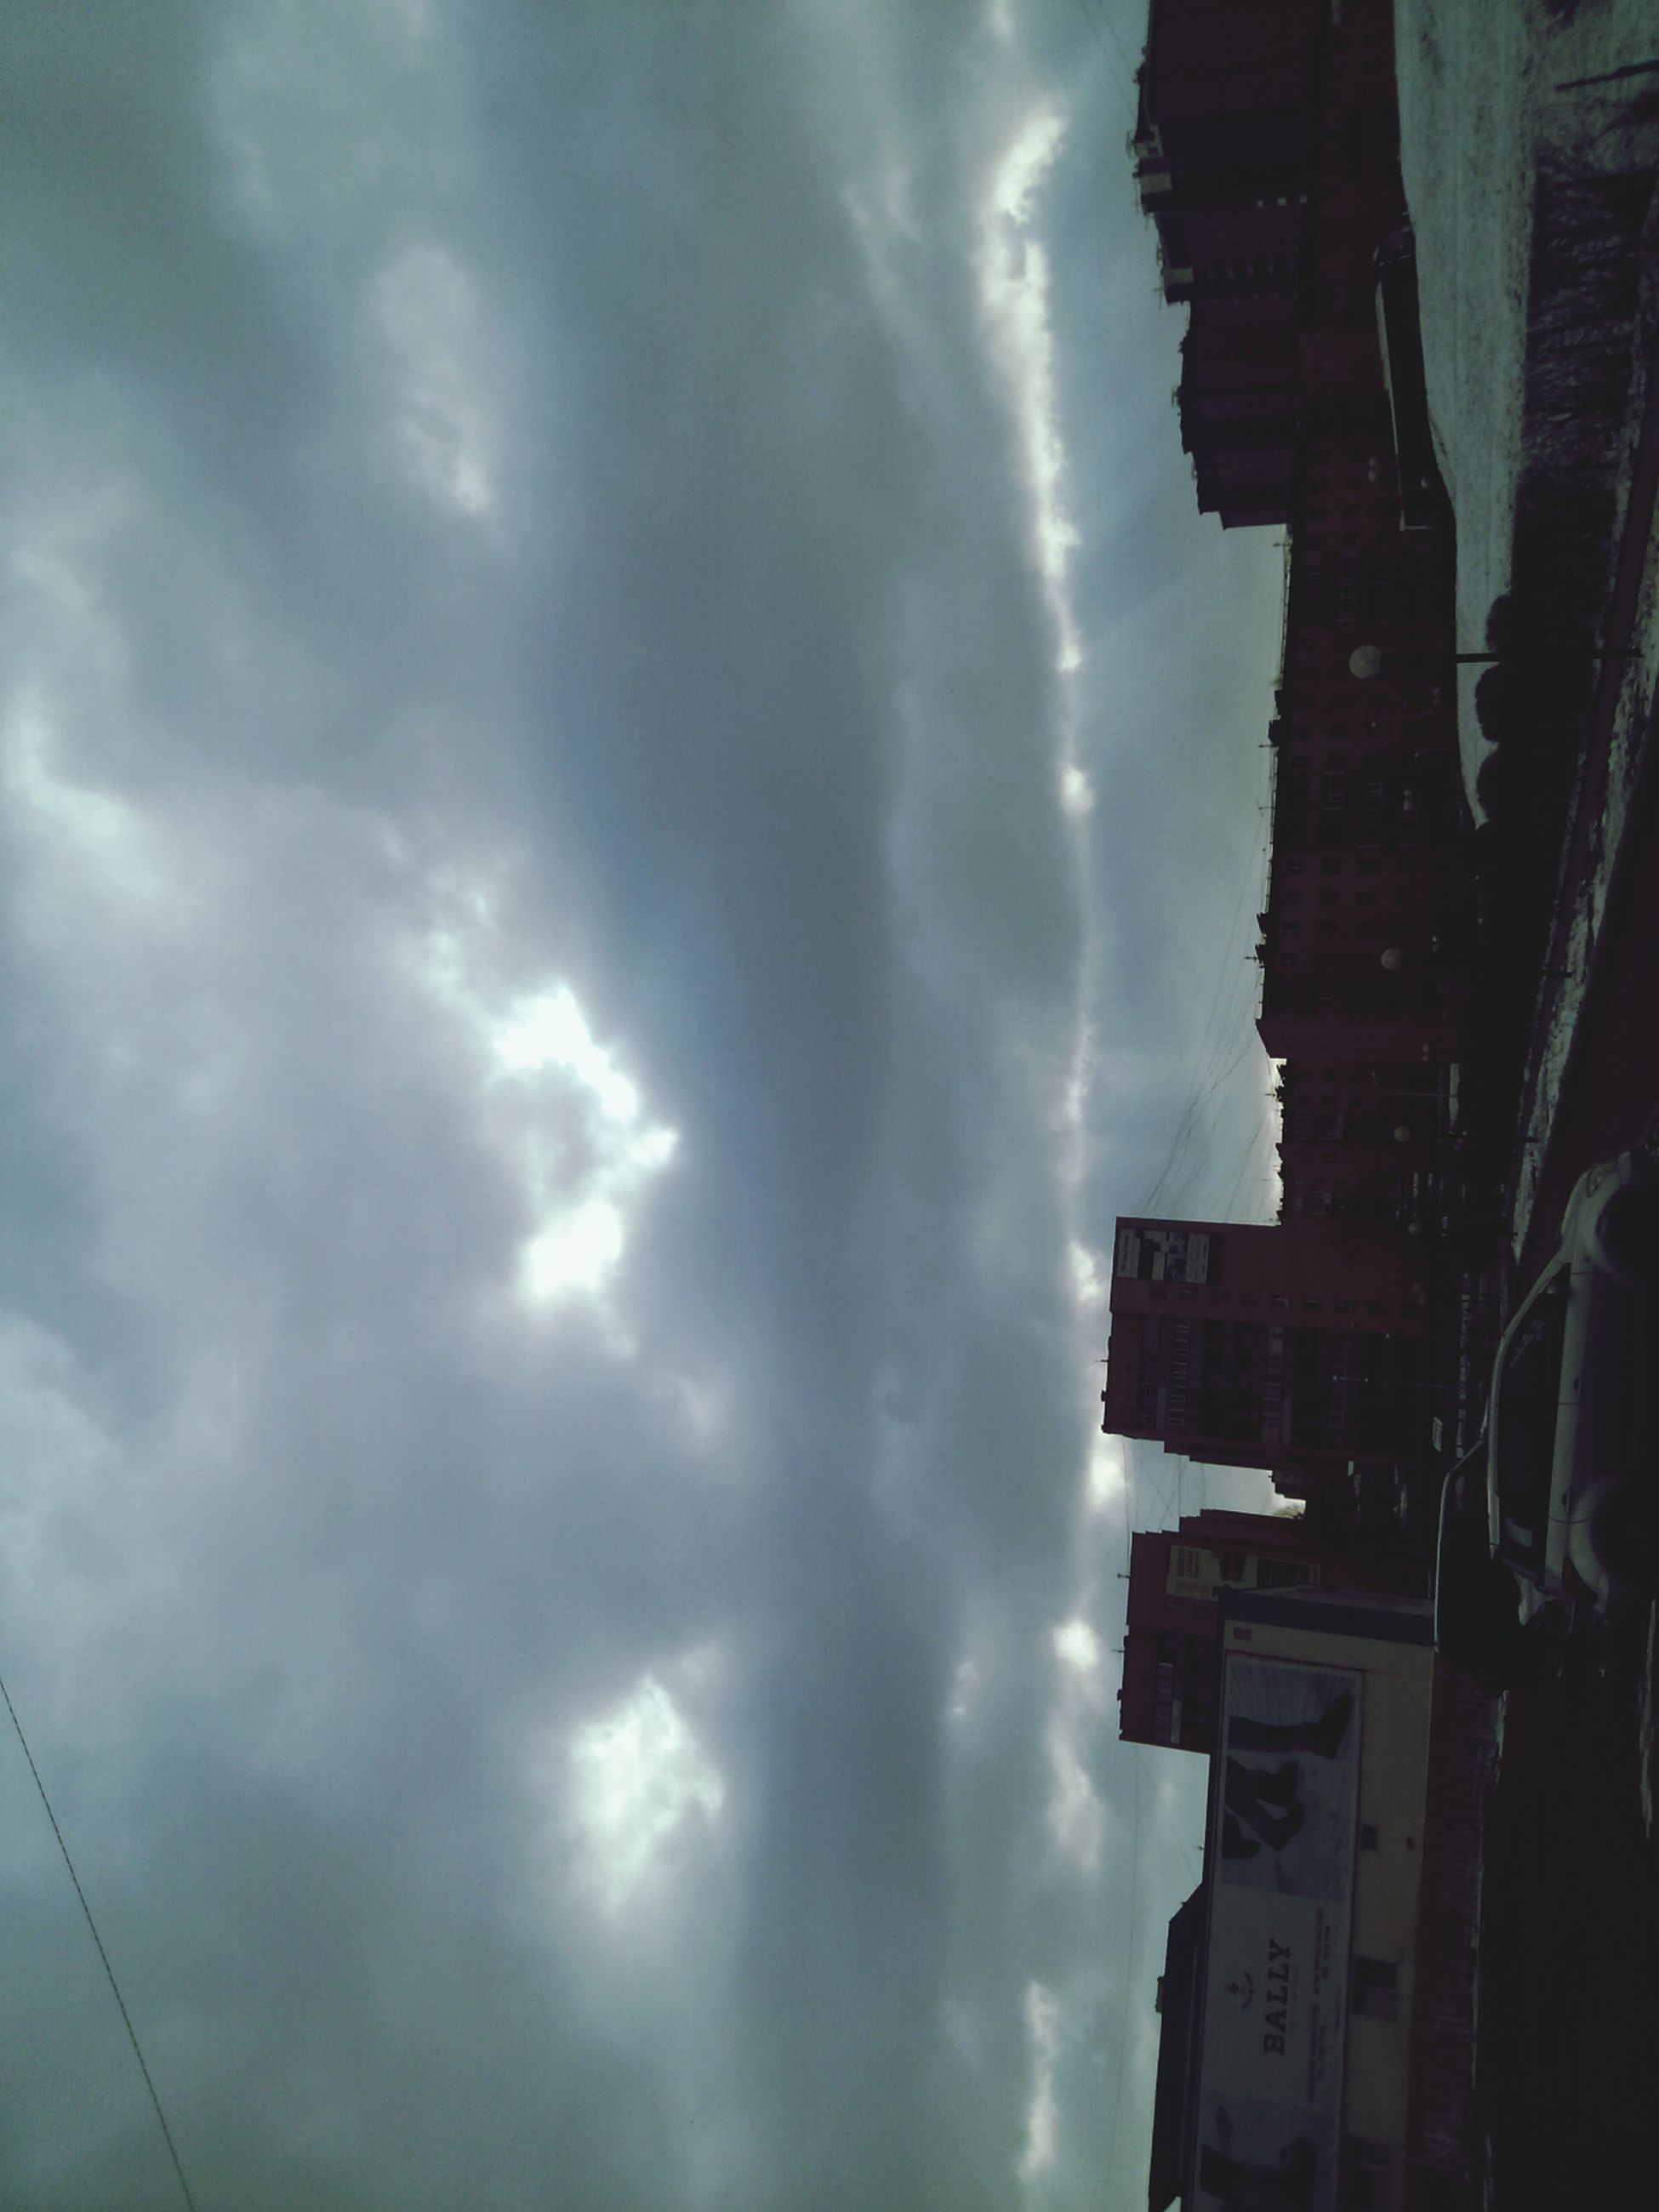 building exterior, architecture, built structure, sky, cloud - sky, cloudy, low angle view, city, building, cloud, weather, residential building, residential structure, overcast, dusk, outdoors, no people, silhouette, storm cloud, day